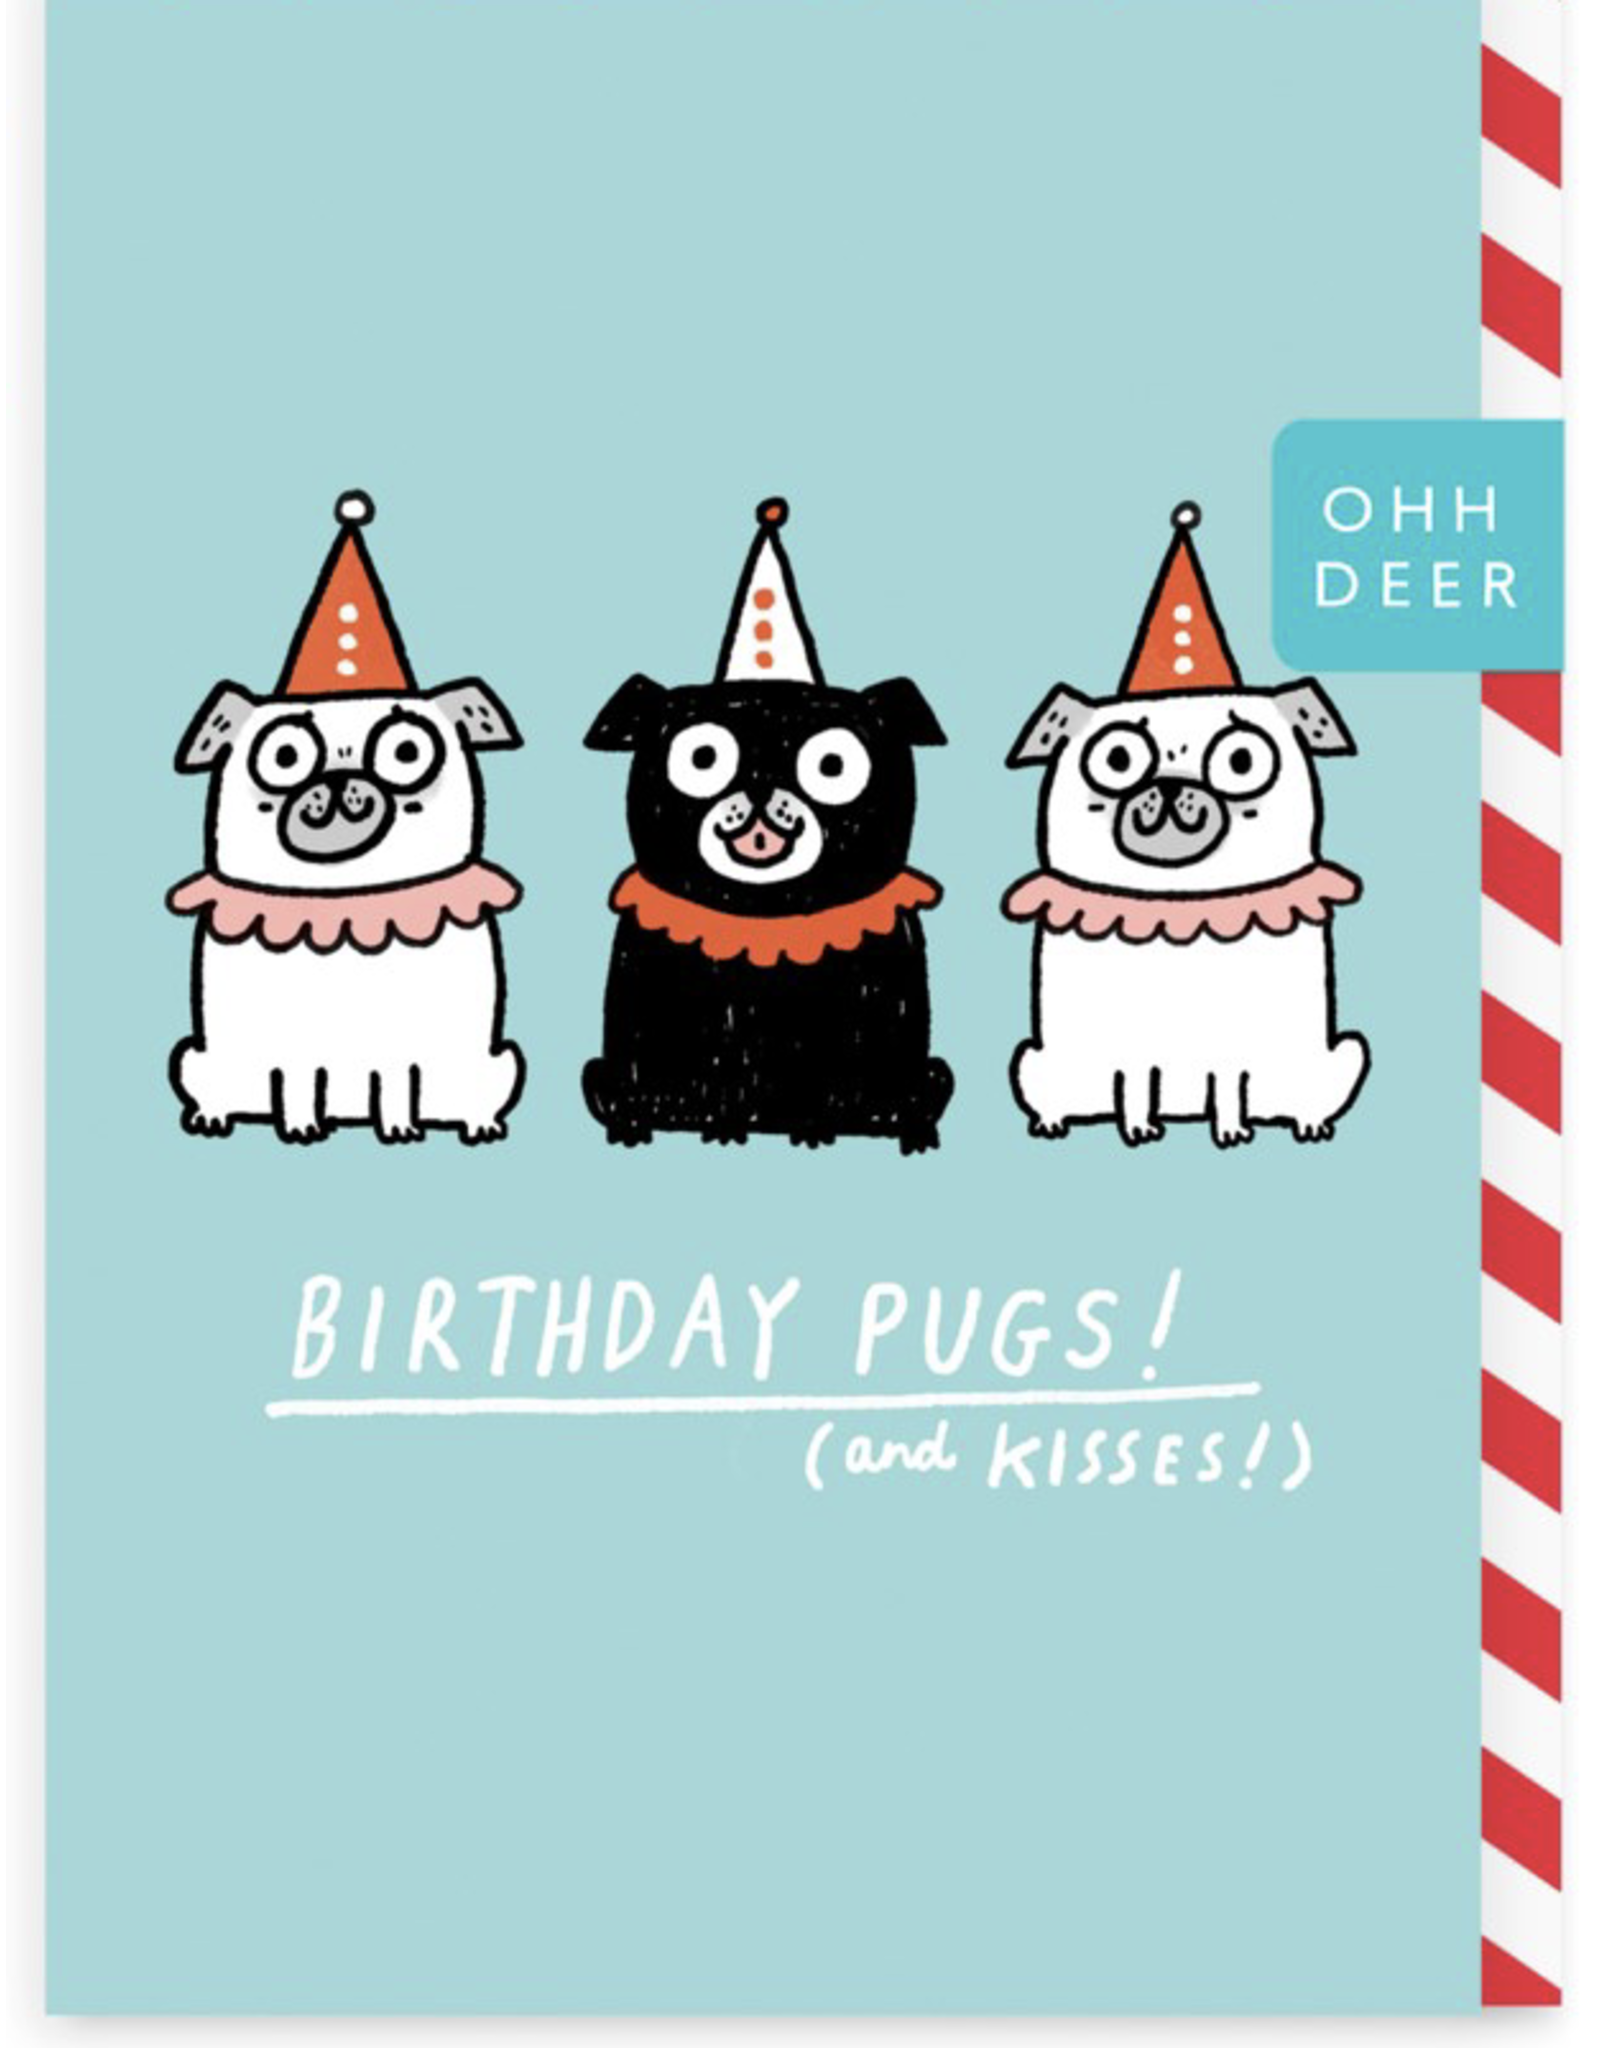 Birthday - Pugs and Kisses